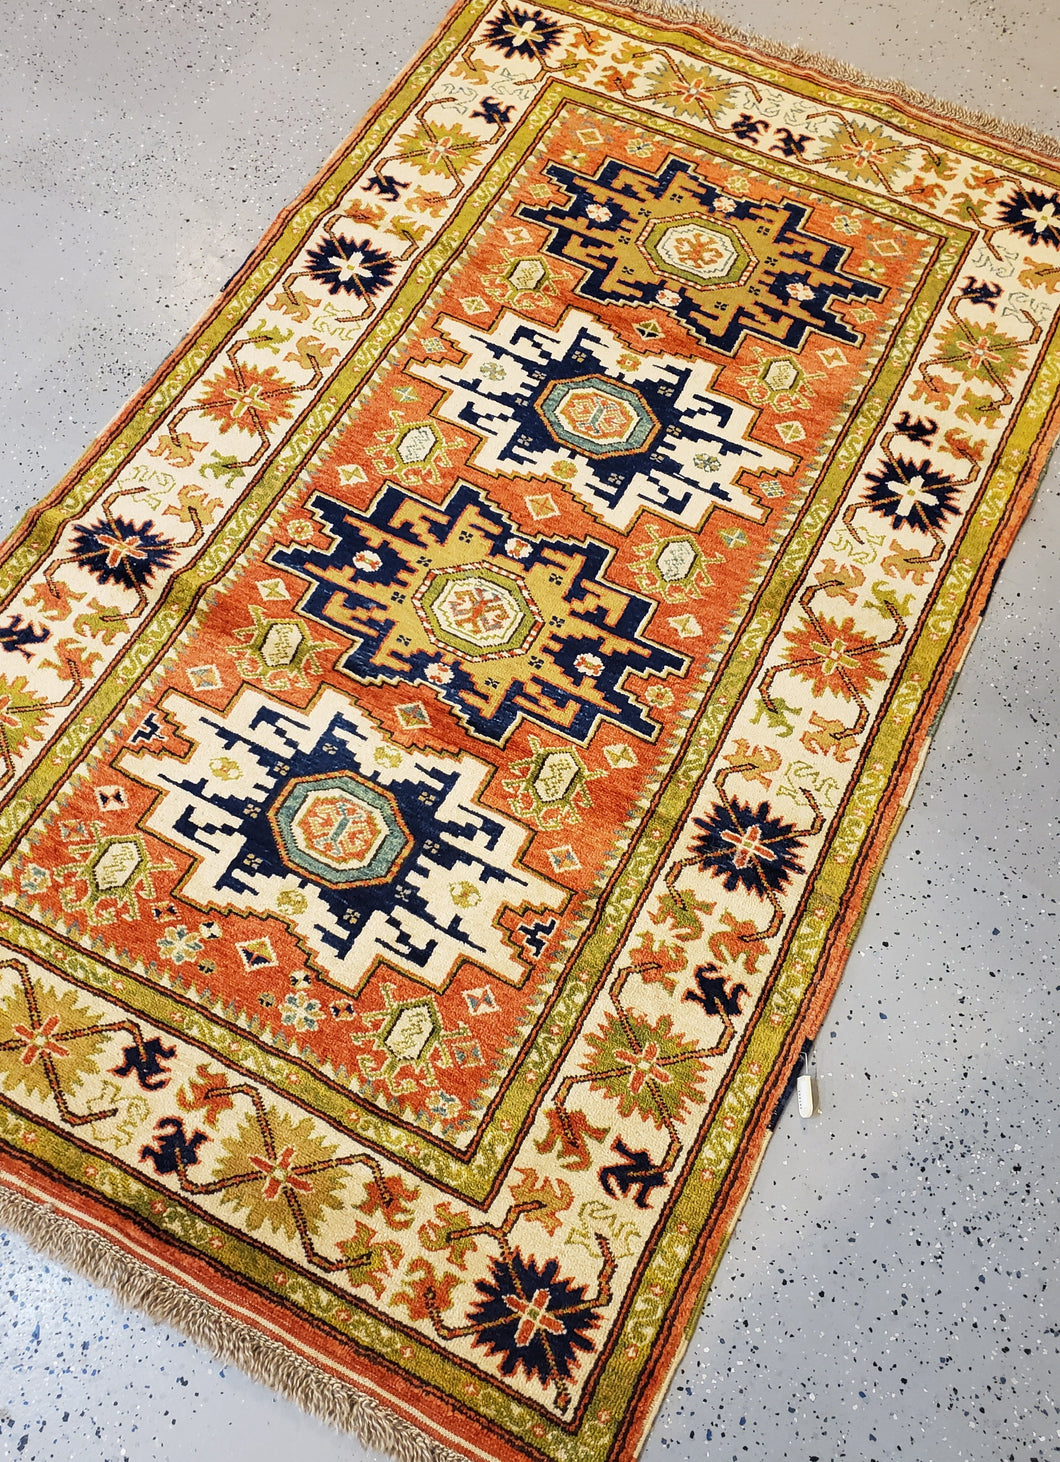 This is a full view of a Turkisk Hand-Knotted Rug